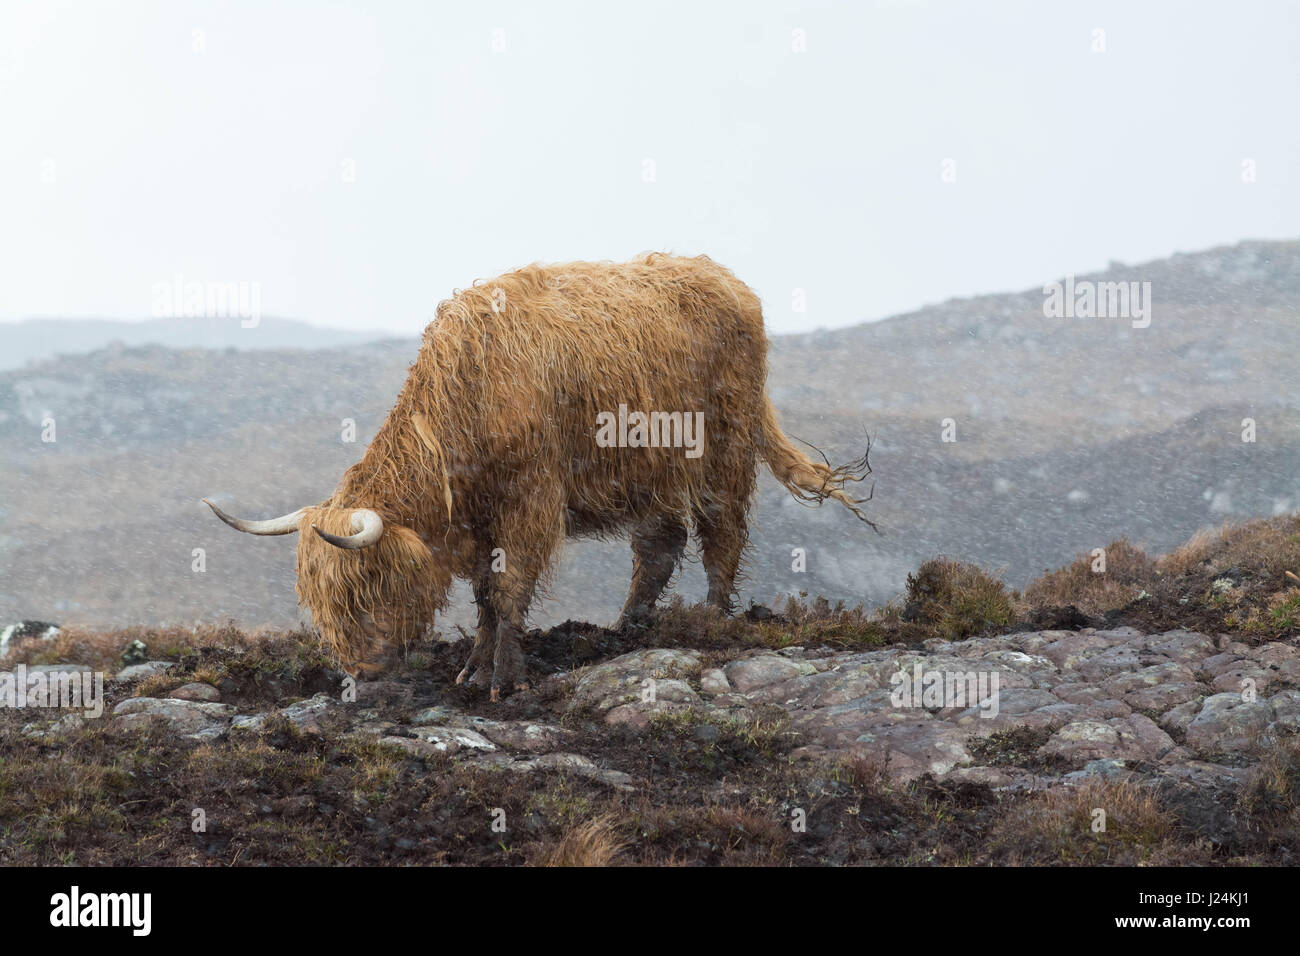 Torridon, Scottish Highlands. 25th Apr, 2017. UK weather - hail and biting winds in Torridon in the Scottish Highlands - Stock Image